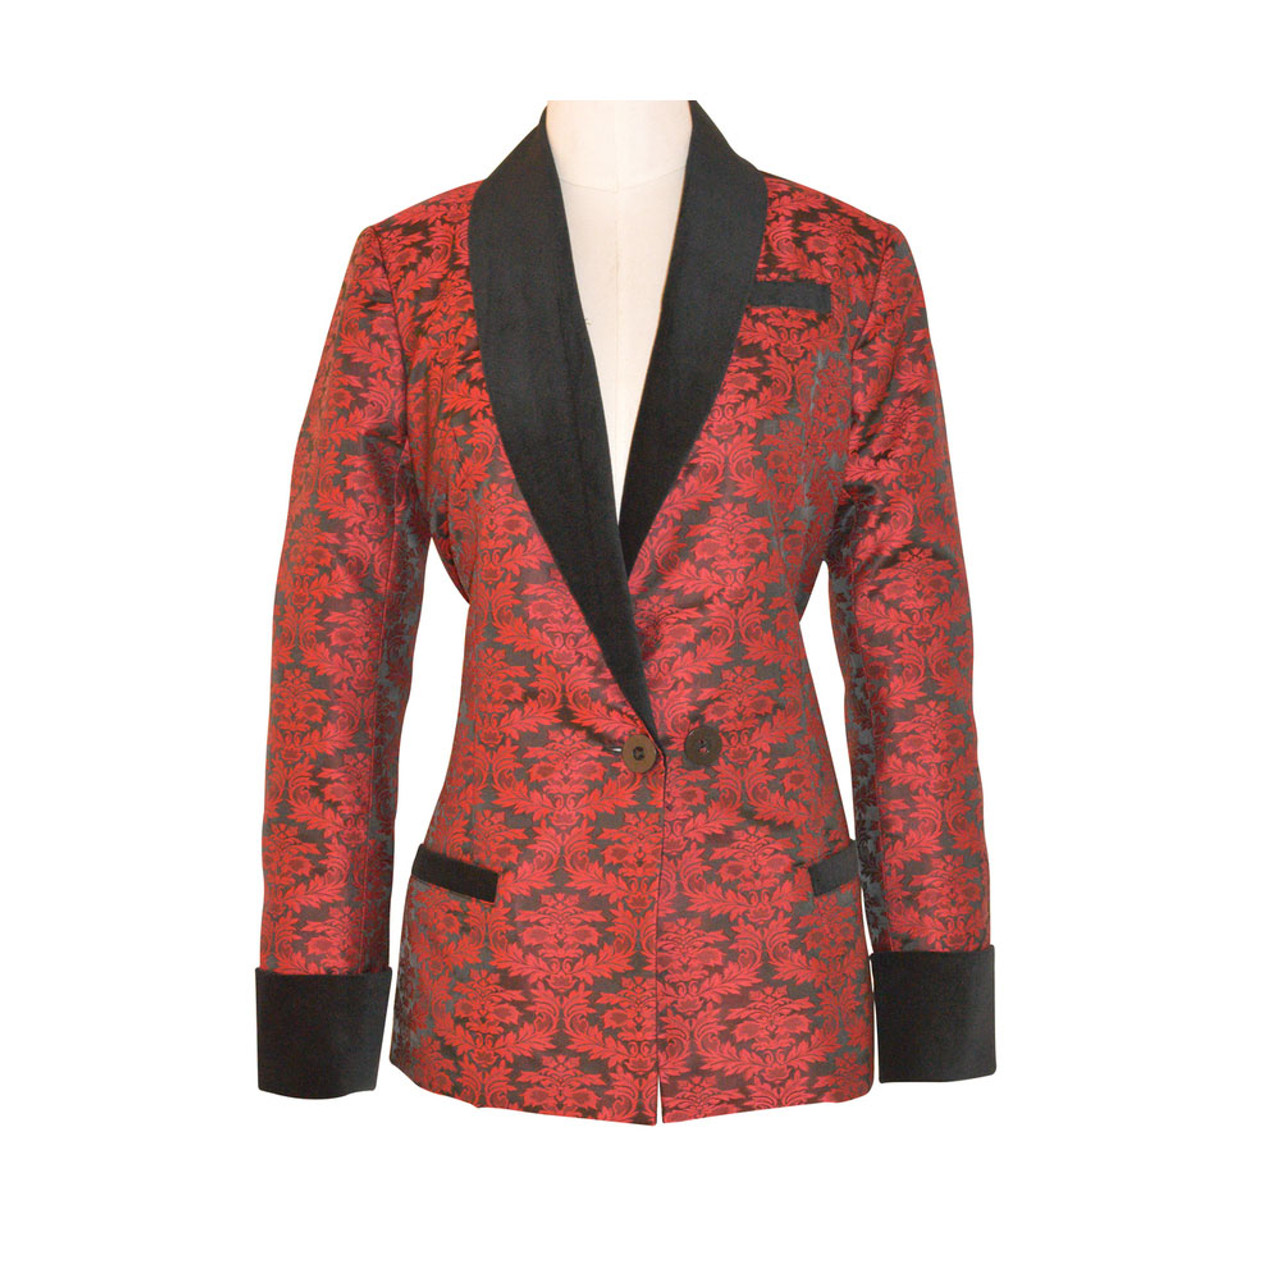 246c0f2680d Women s Wine Brocade Smoking Jacket with Black Lining